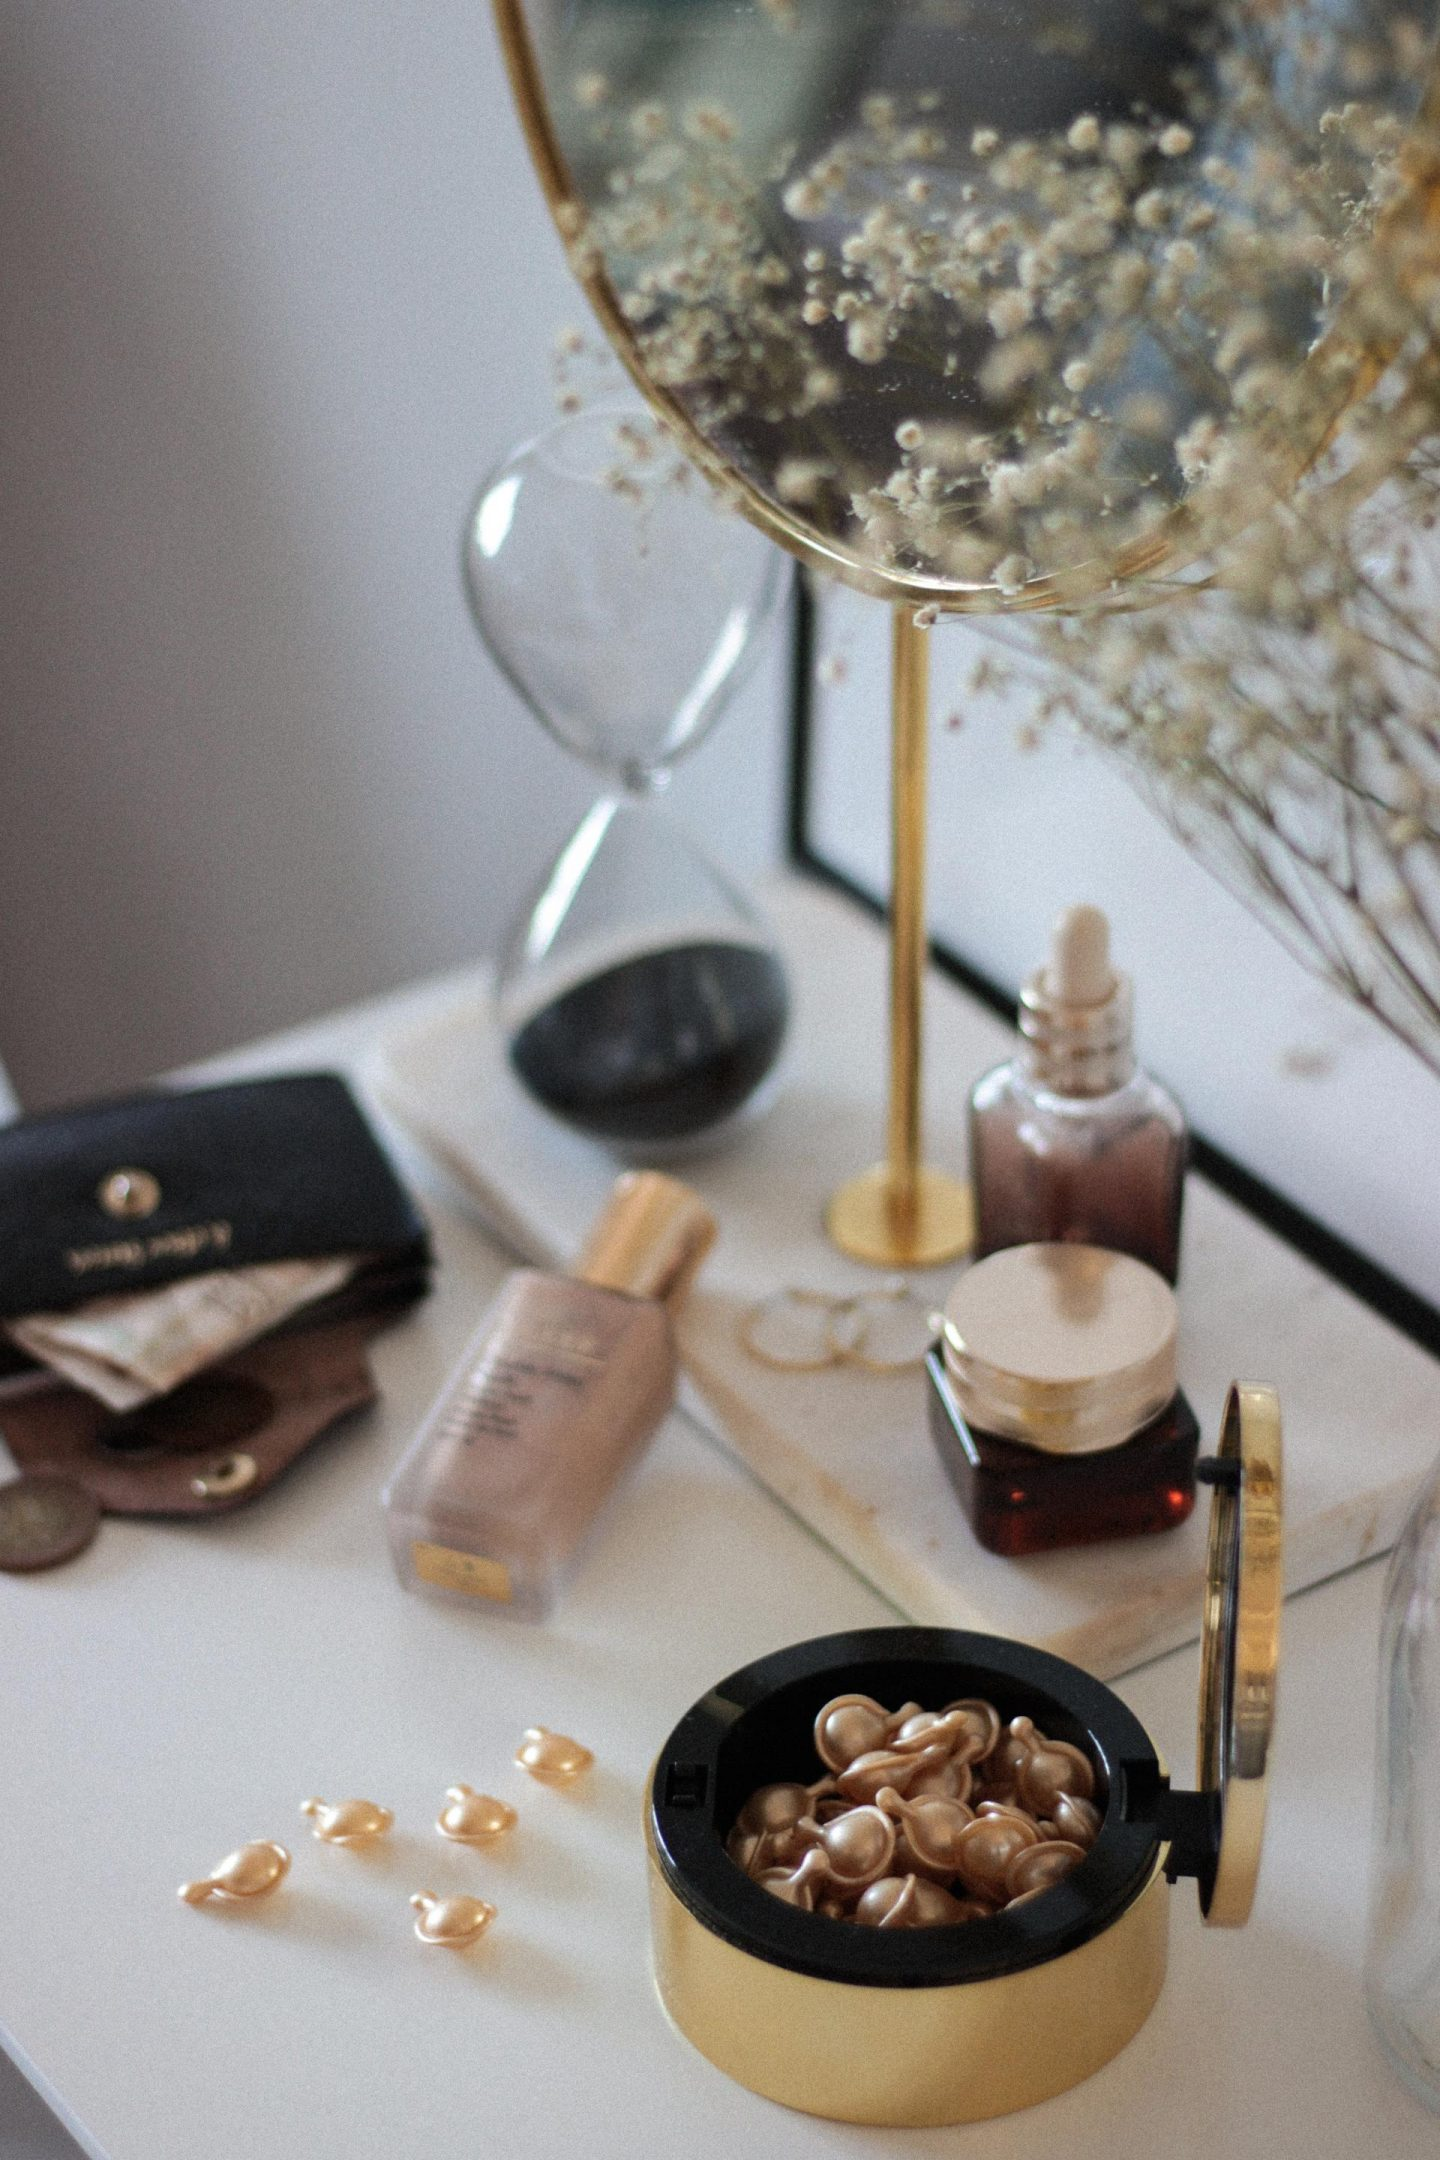 SPLURGE AND SAVE IN YOUR BEAUTY ROUTINE